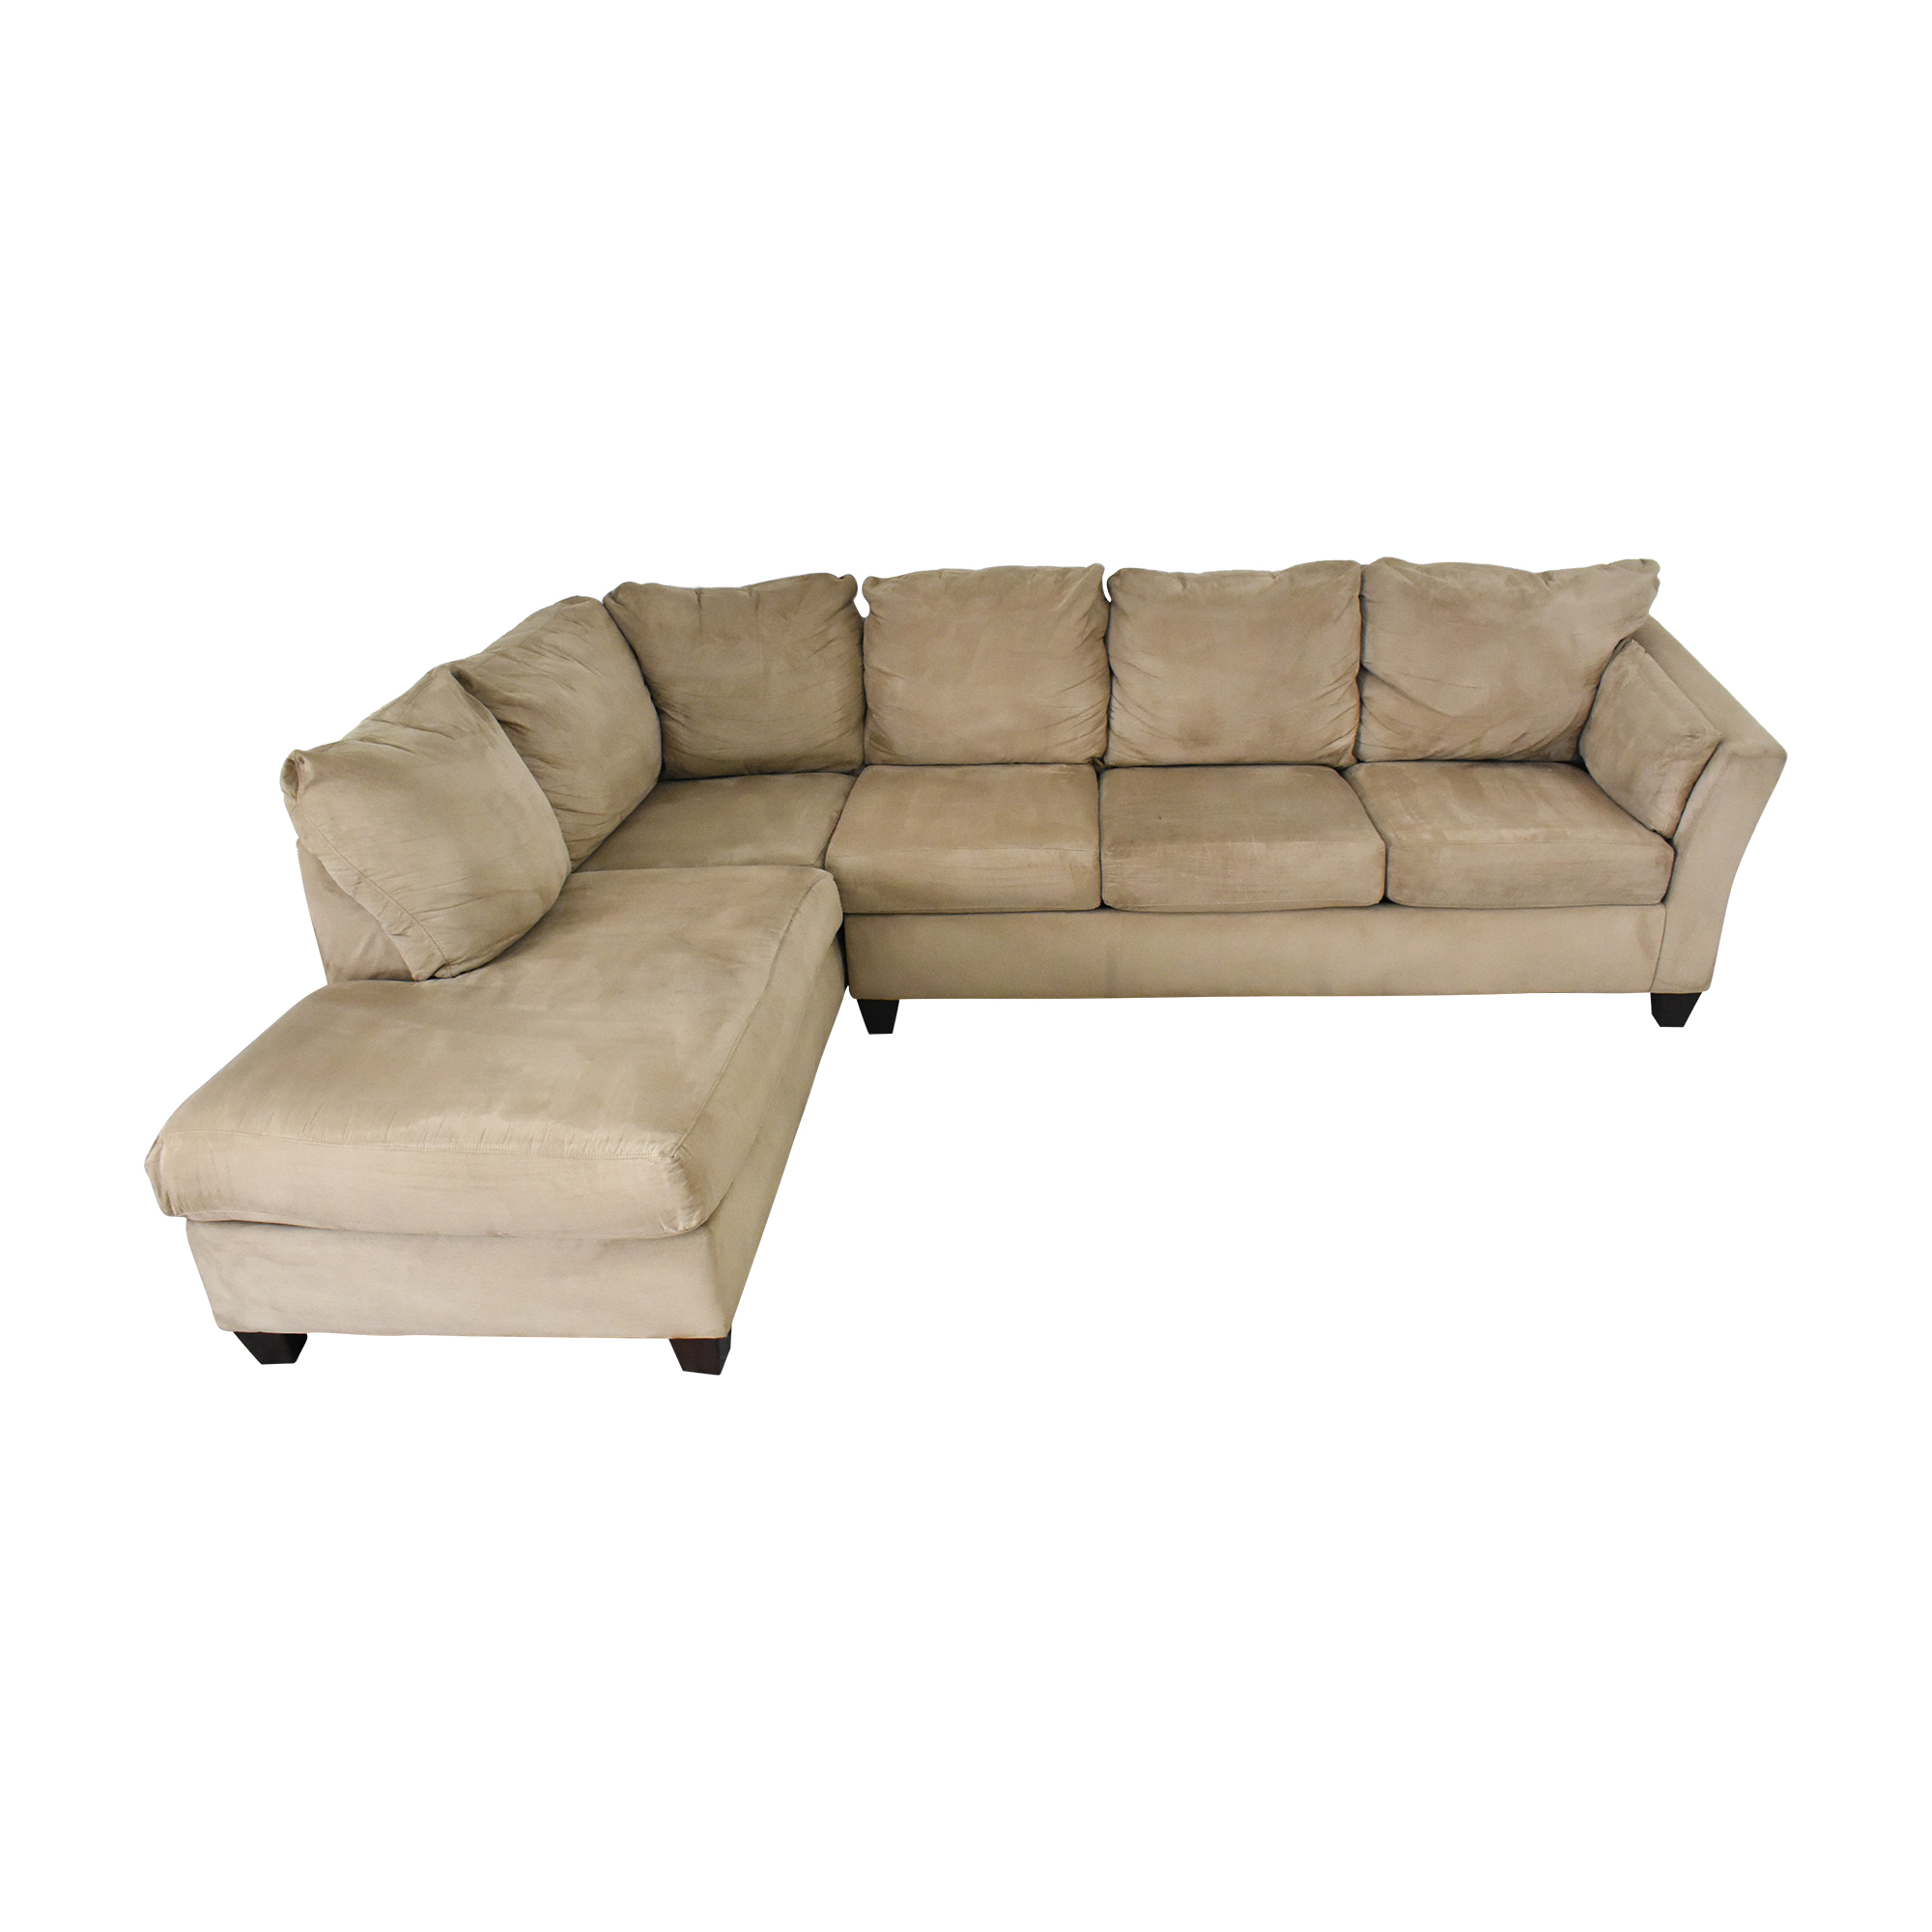 68 off klaussner klaussner sectional sofa sofas